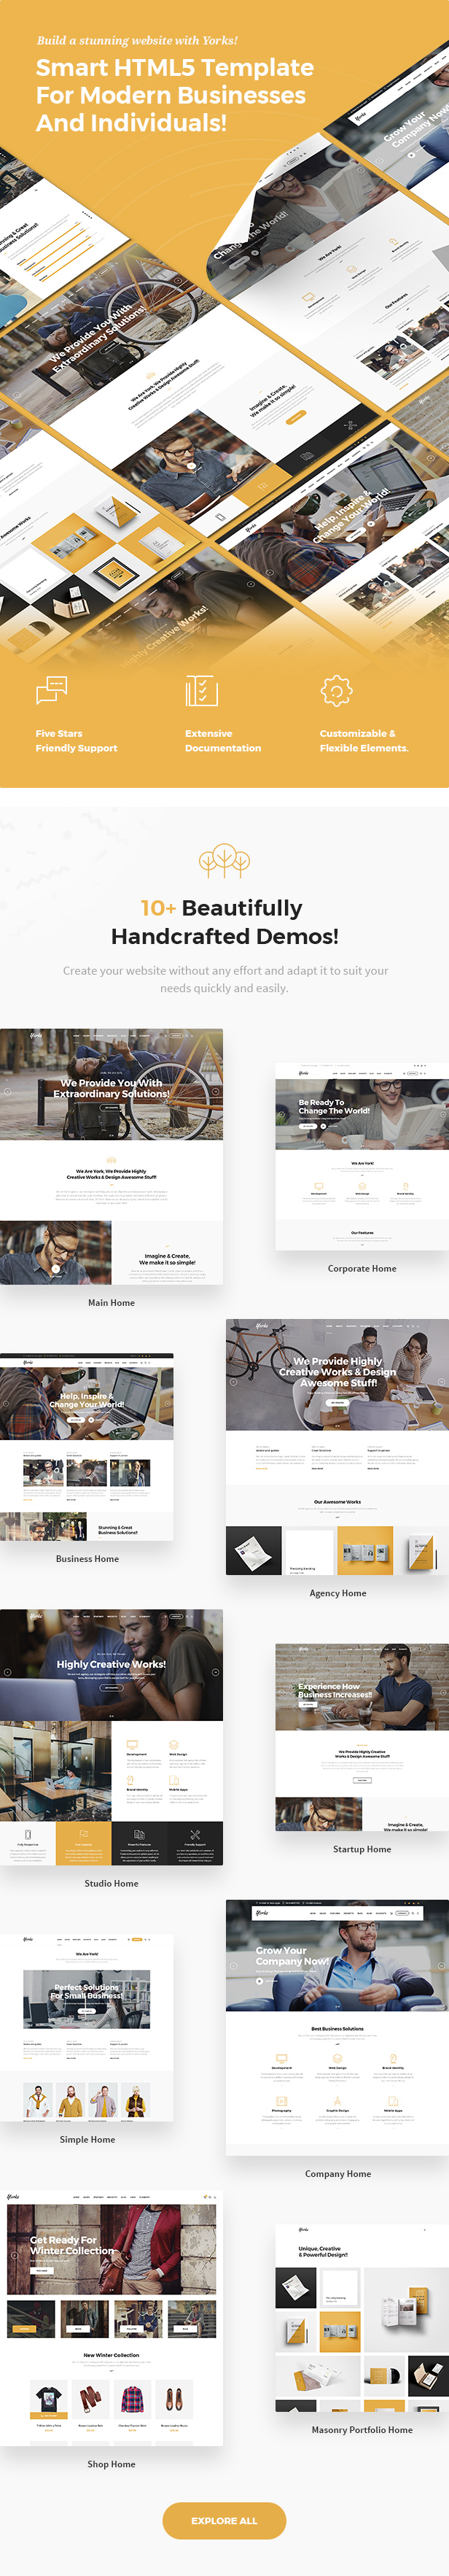 Yorks - Modern HTML5 Template For Businesses & Individuals - 5